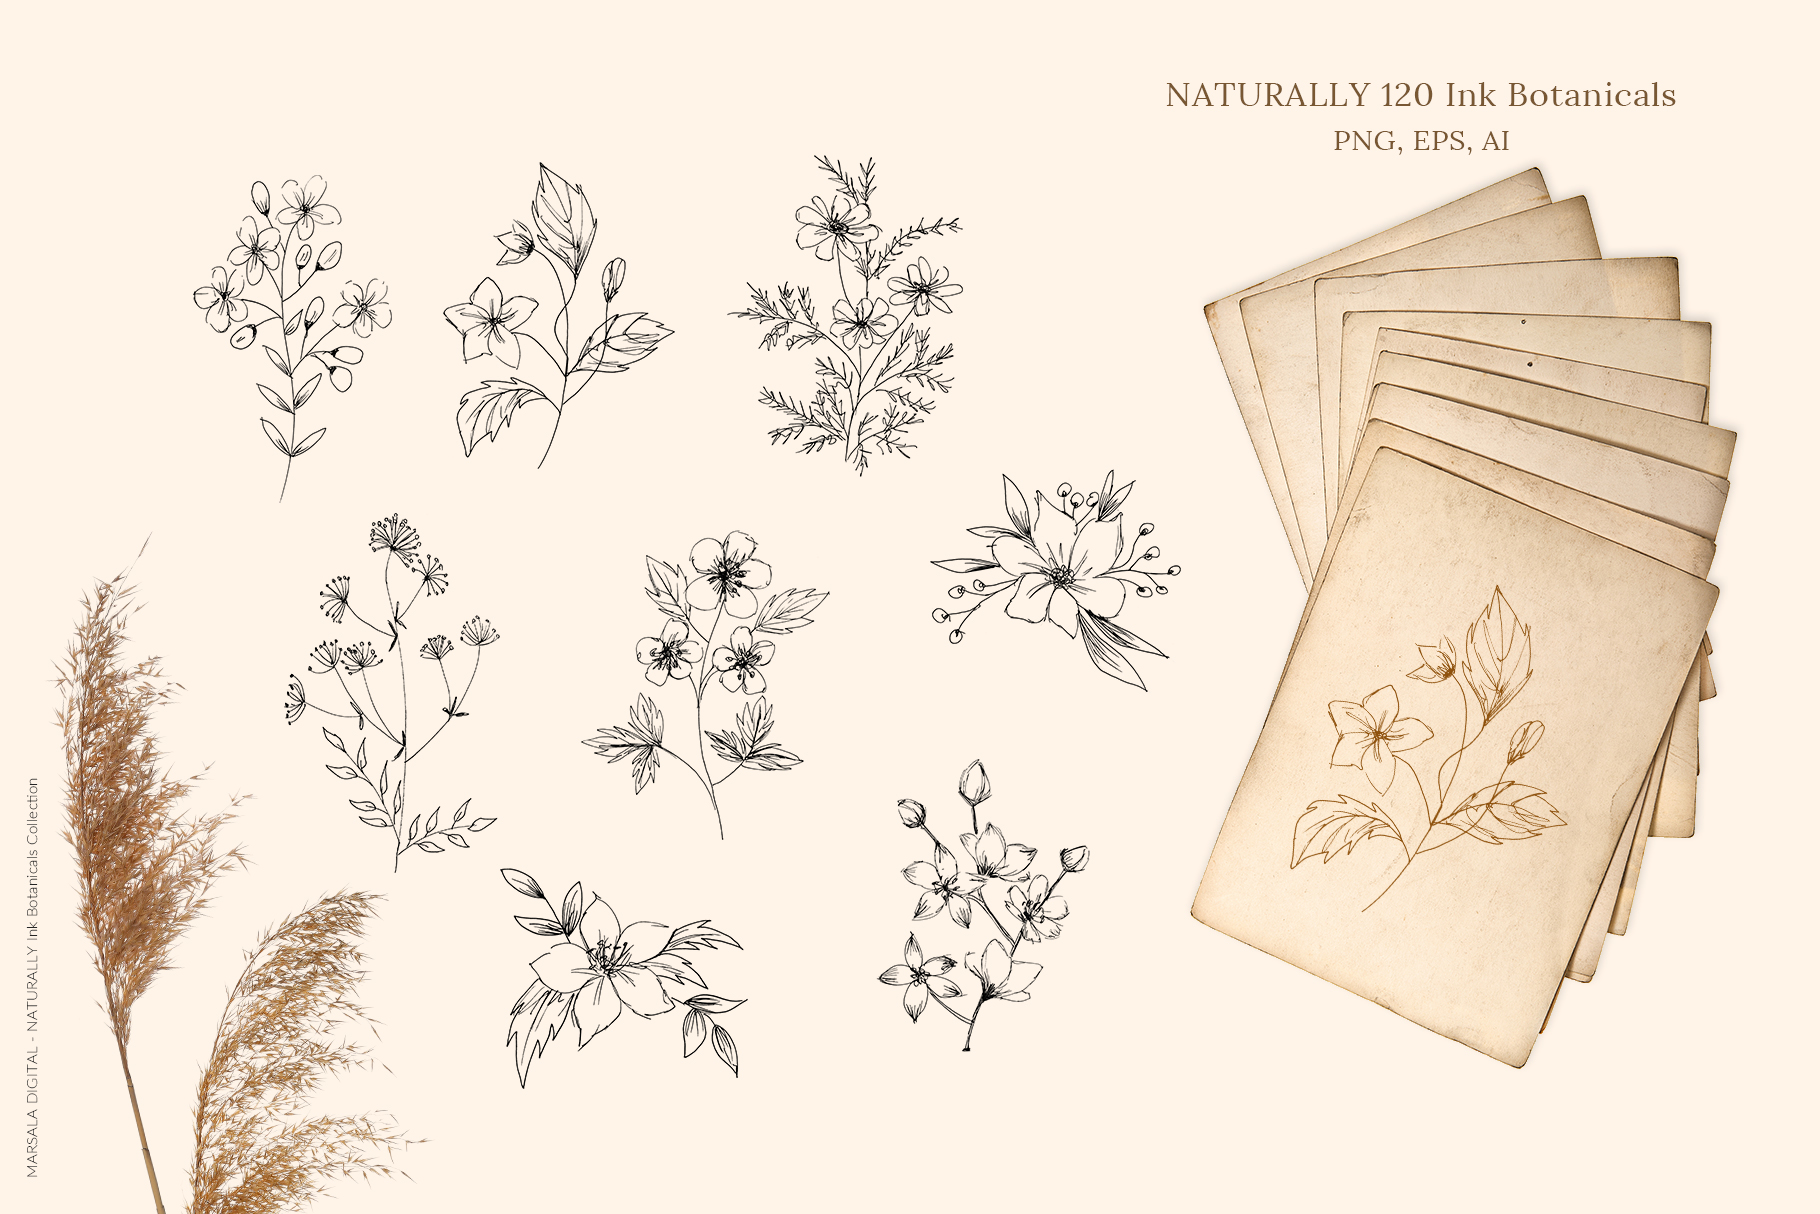 Ink Botanicals Vintage Wildflowers Ink Botanicals Vintage example image 2